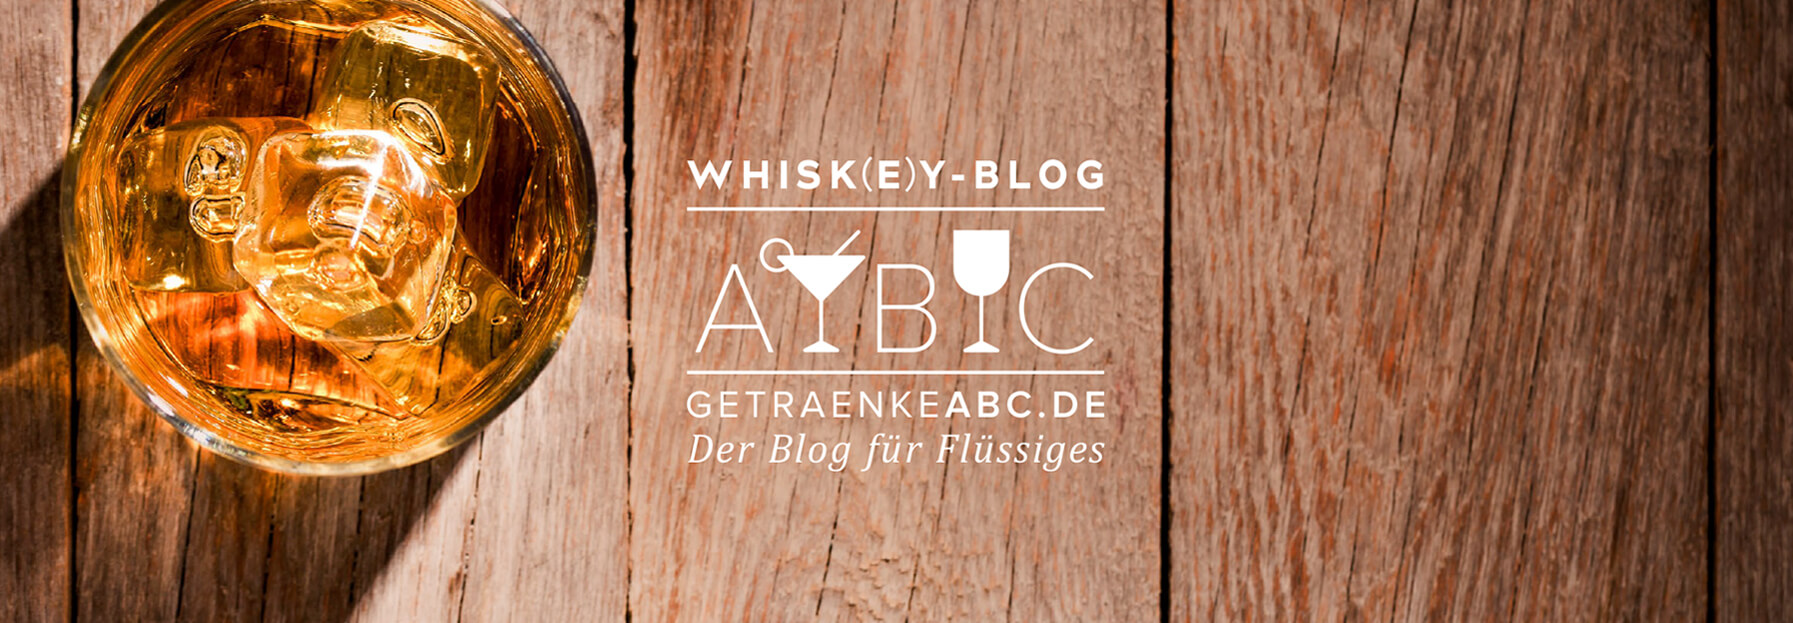 Whiskeyblog